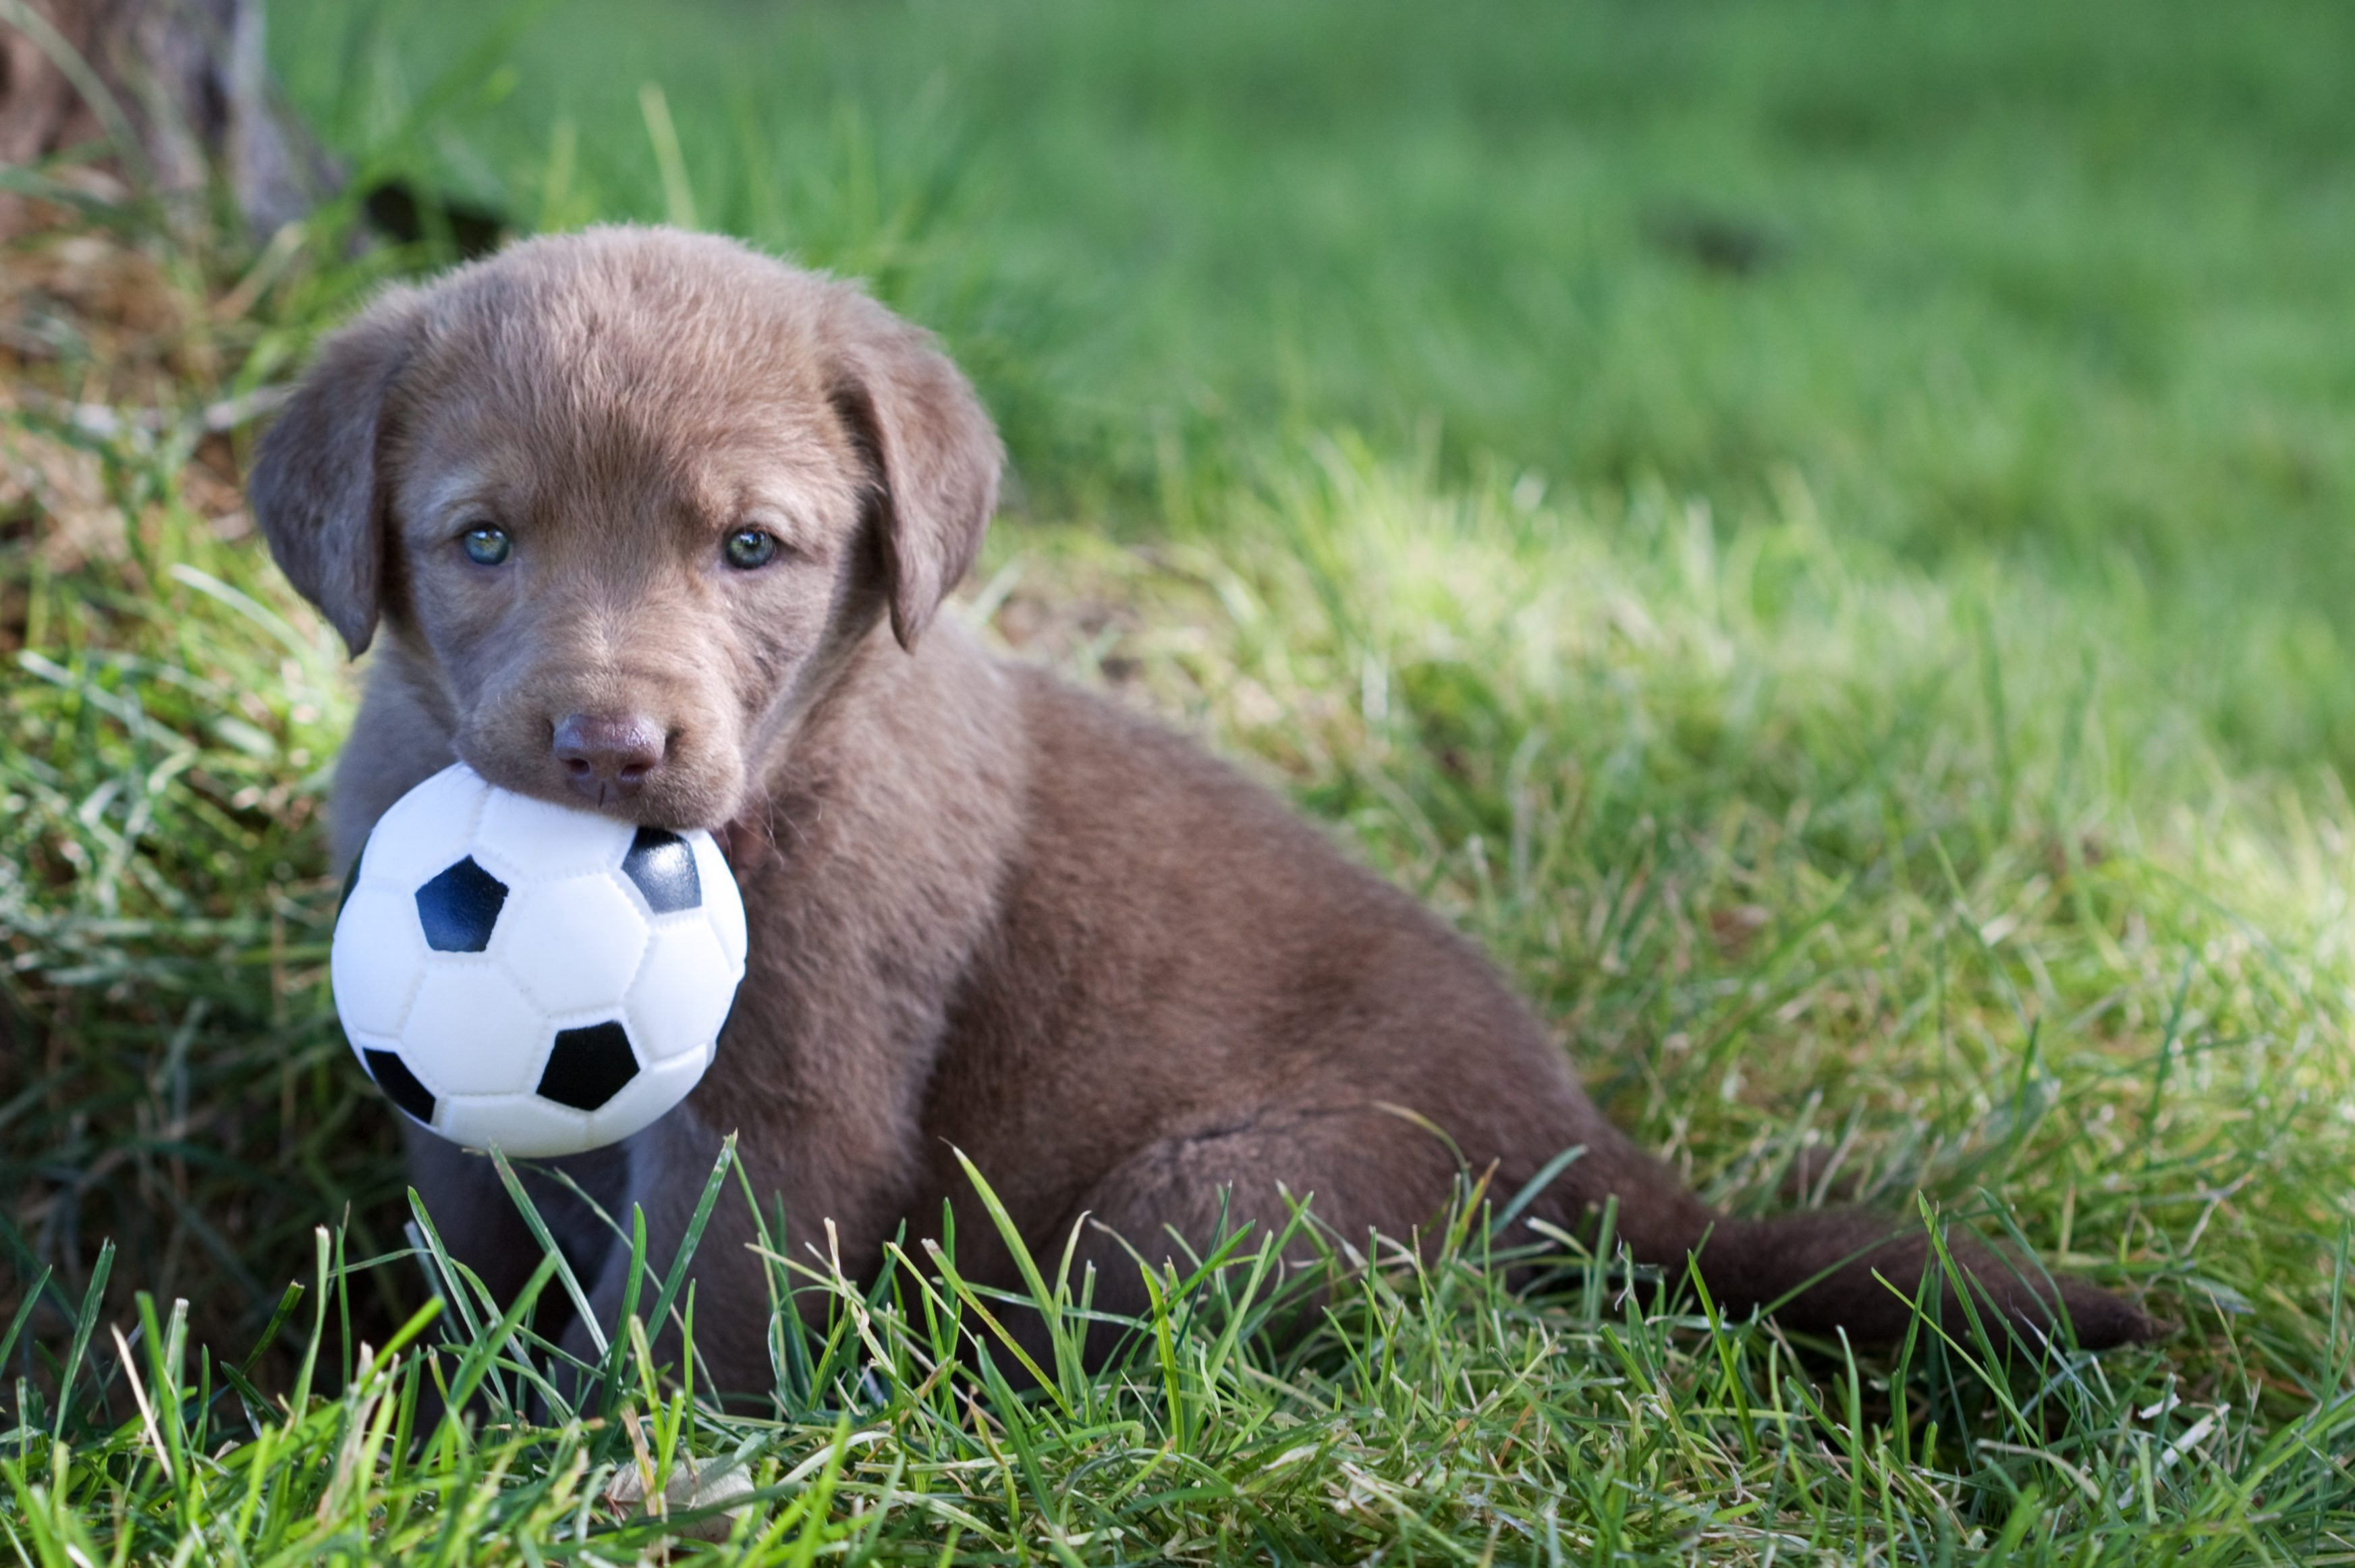 Chesapeake Bay Retriever Puppy with Toy Ball